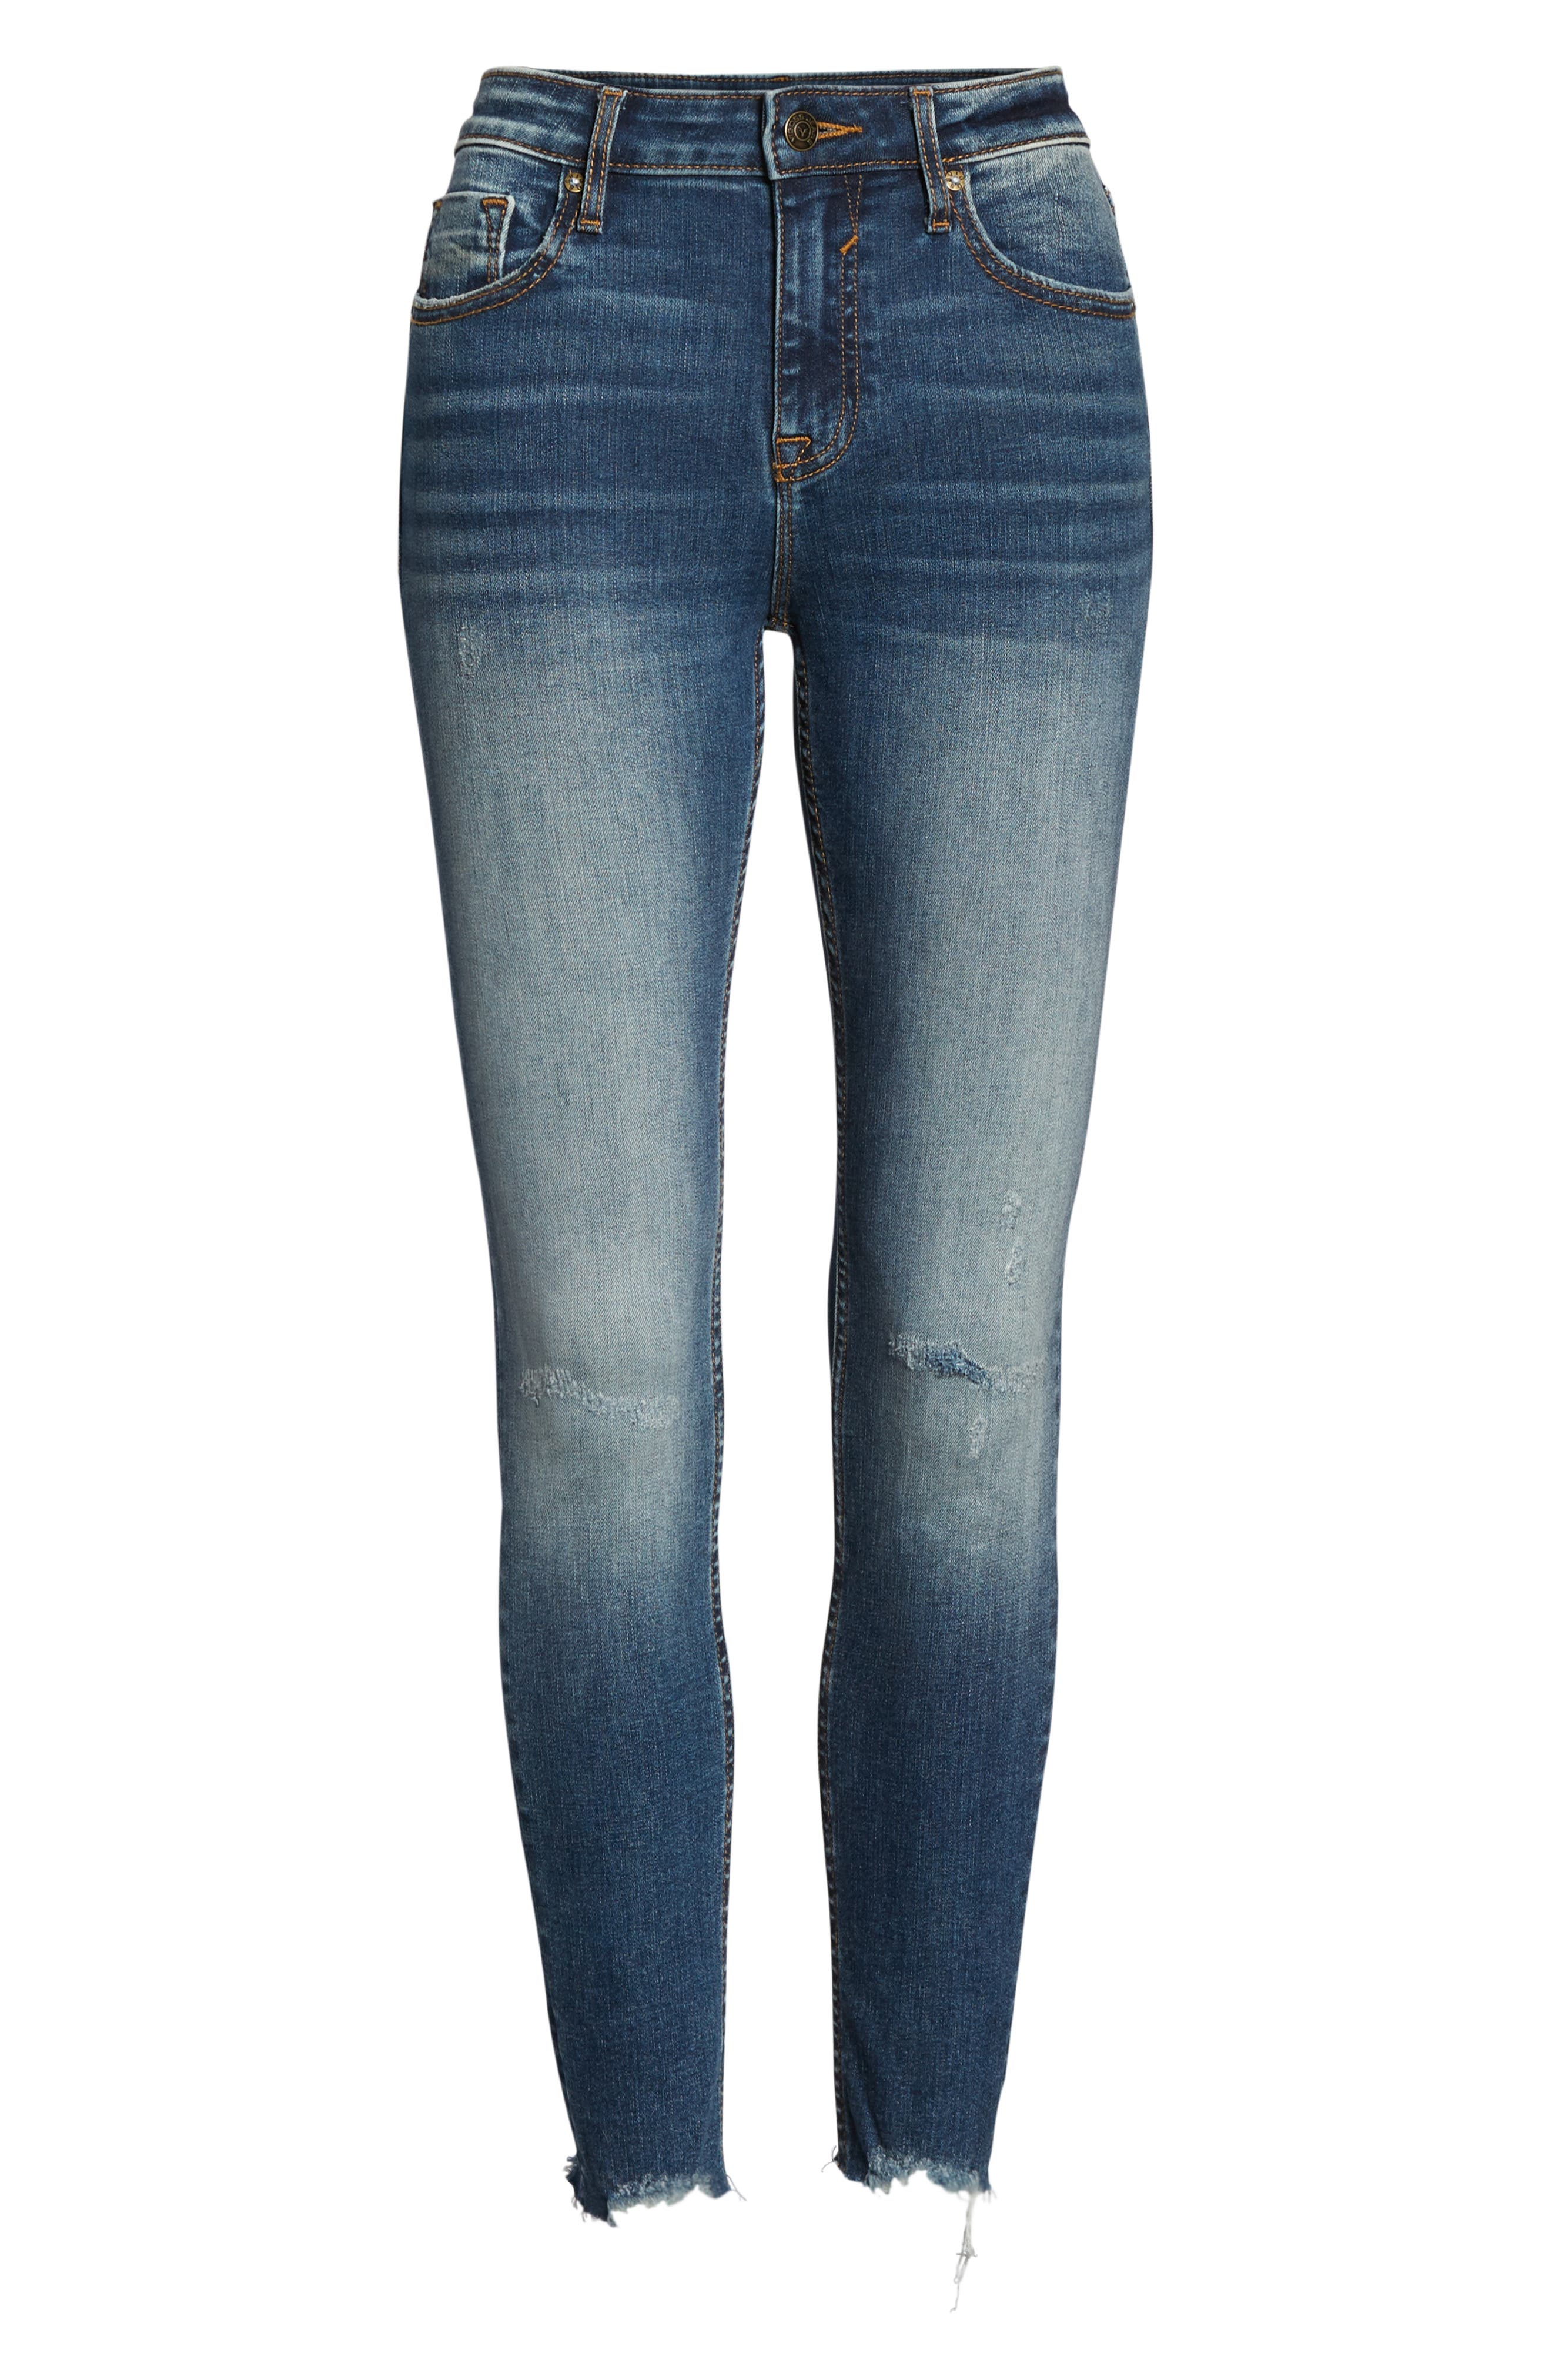 VIGOSS,                             Marley Distressed Cutoff Skinny Jeans,                             Alternate thumbnail 7, color,                             400